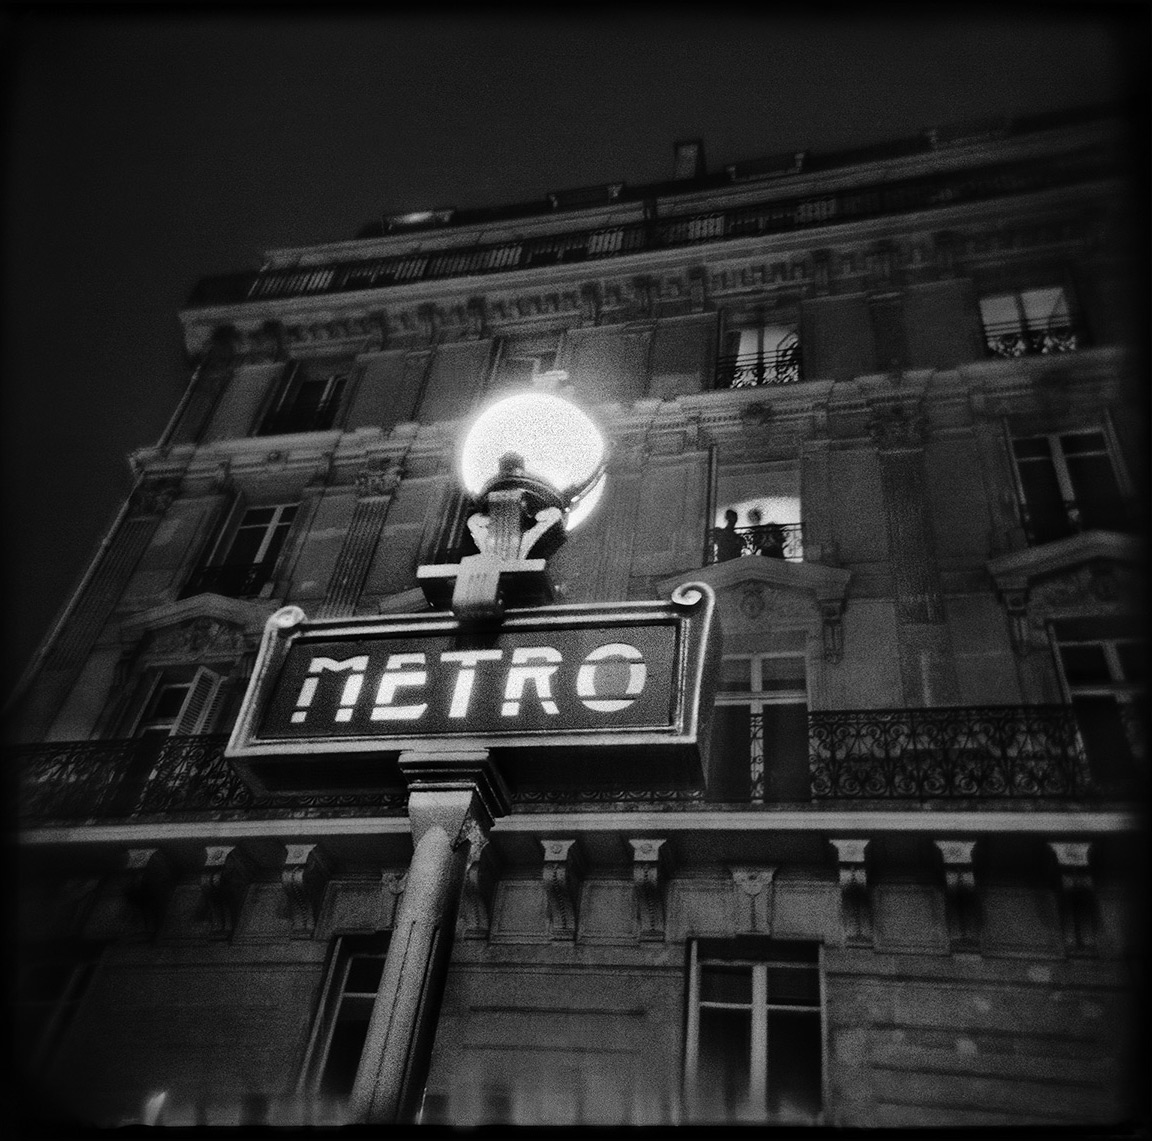 02-New Website-022113-METRO-SIGN-NIGHT-FINAL.jpg